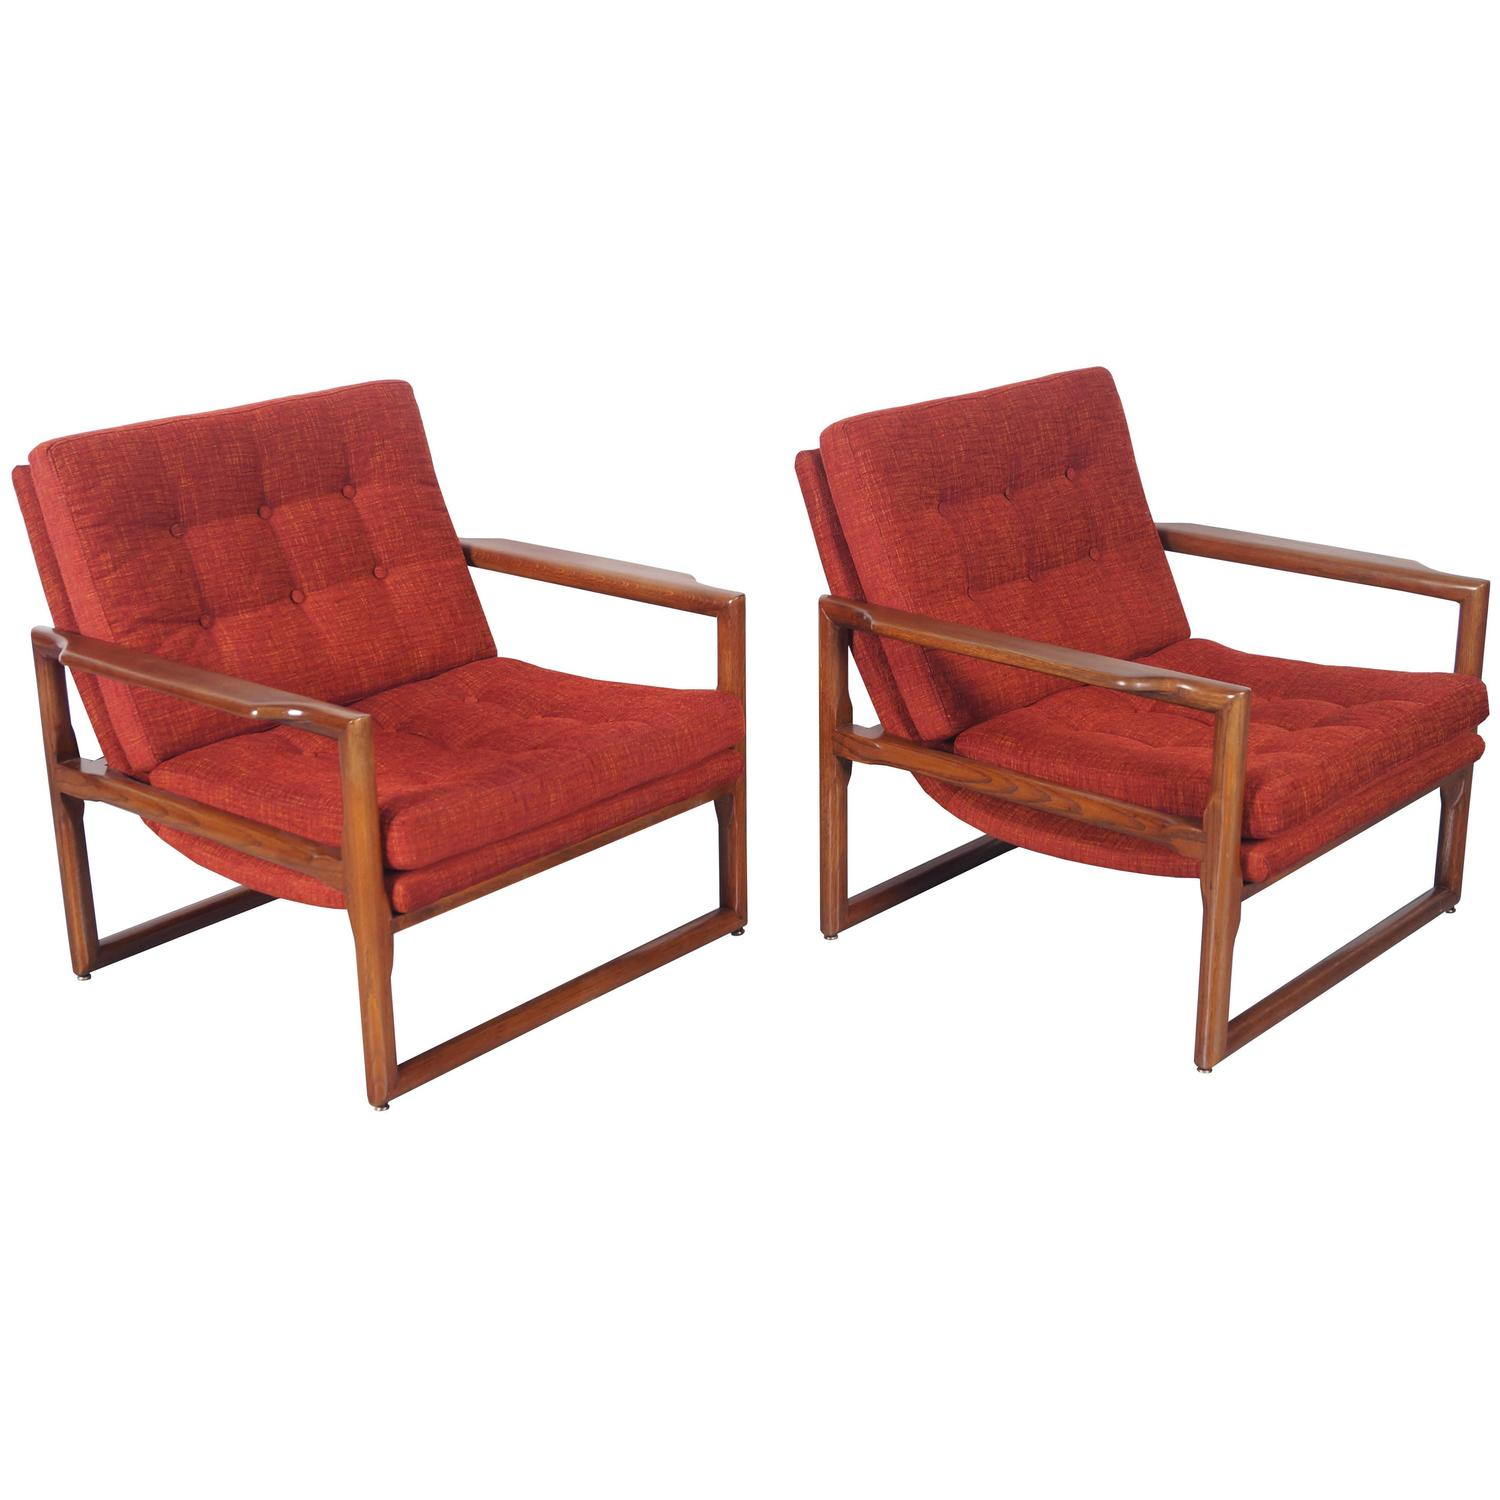 "Vintage ""Cube"" Lounge Chairs by Milo Baughman at 1stdibs"